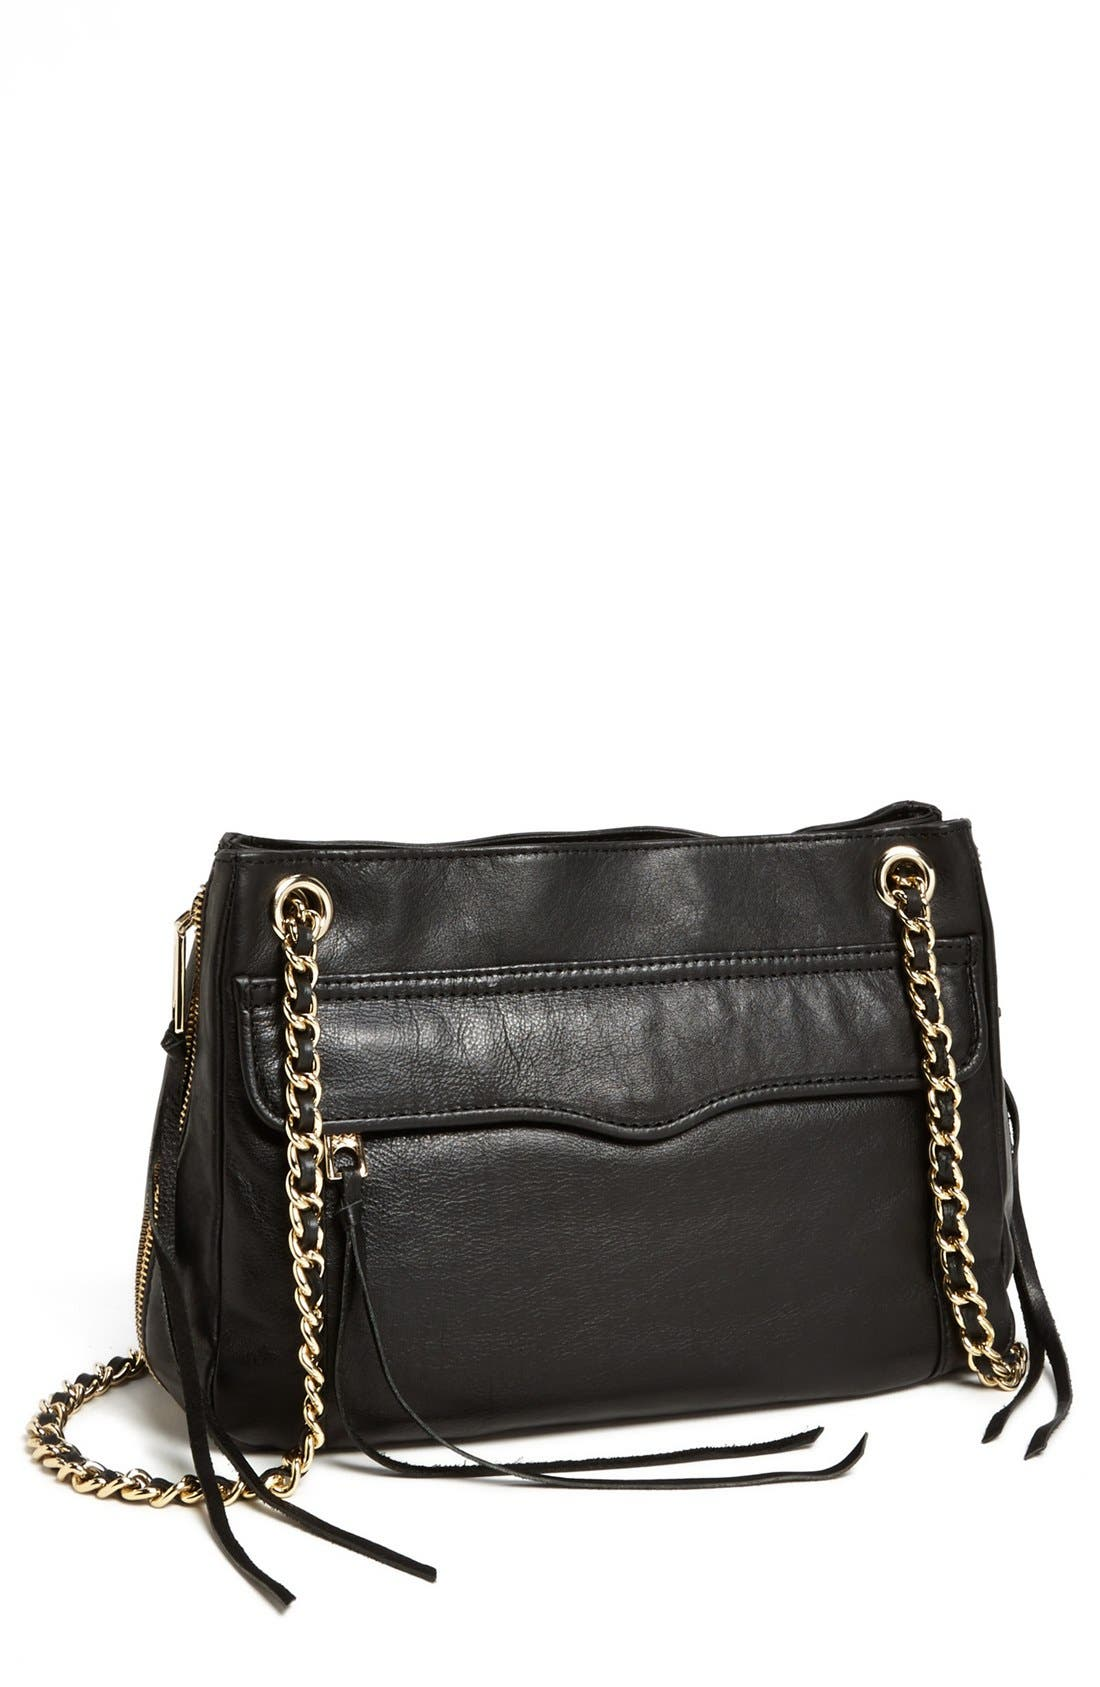 REBECCA MINKOFF,                             'Swing' Convertible Shoulder Bag,                             Main thumbnail 1, color,                             003